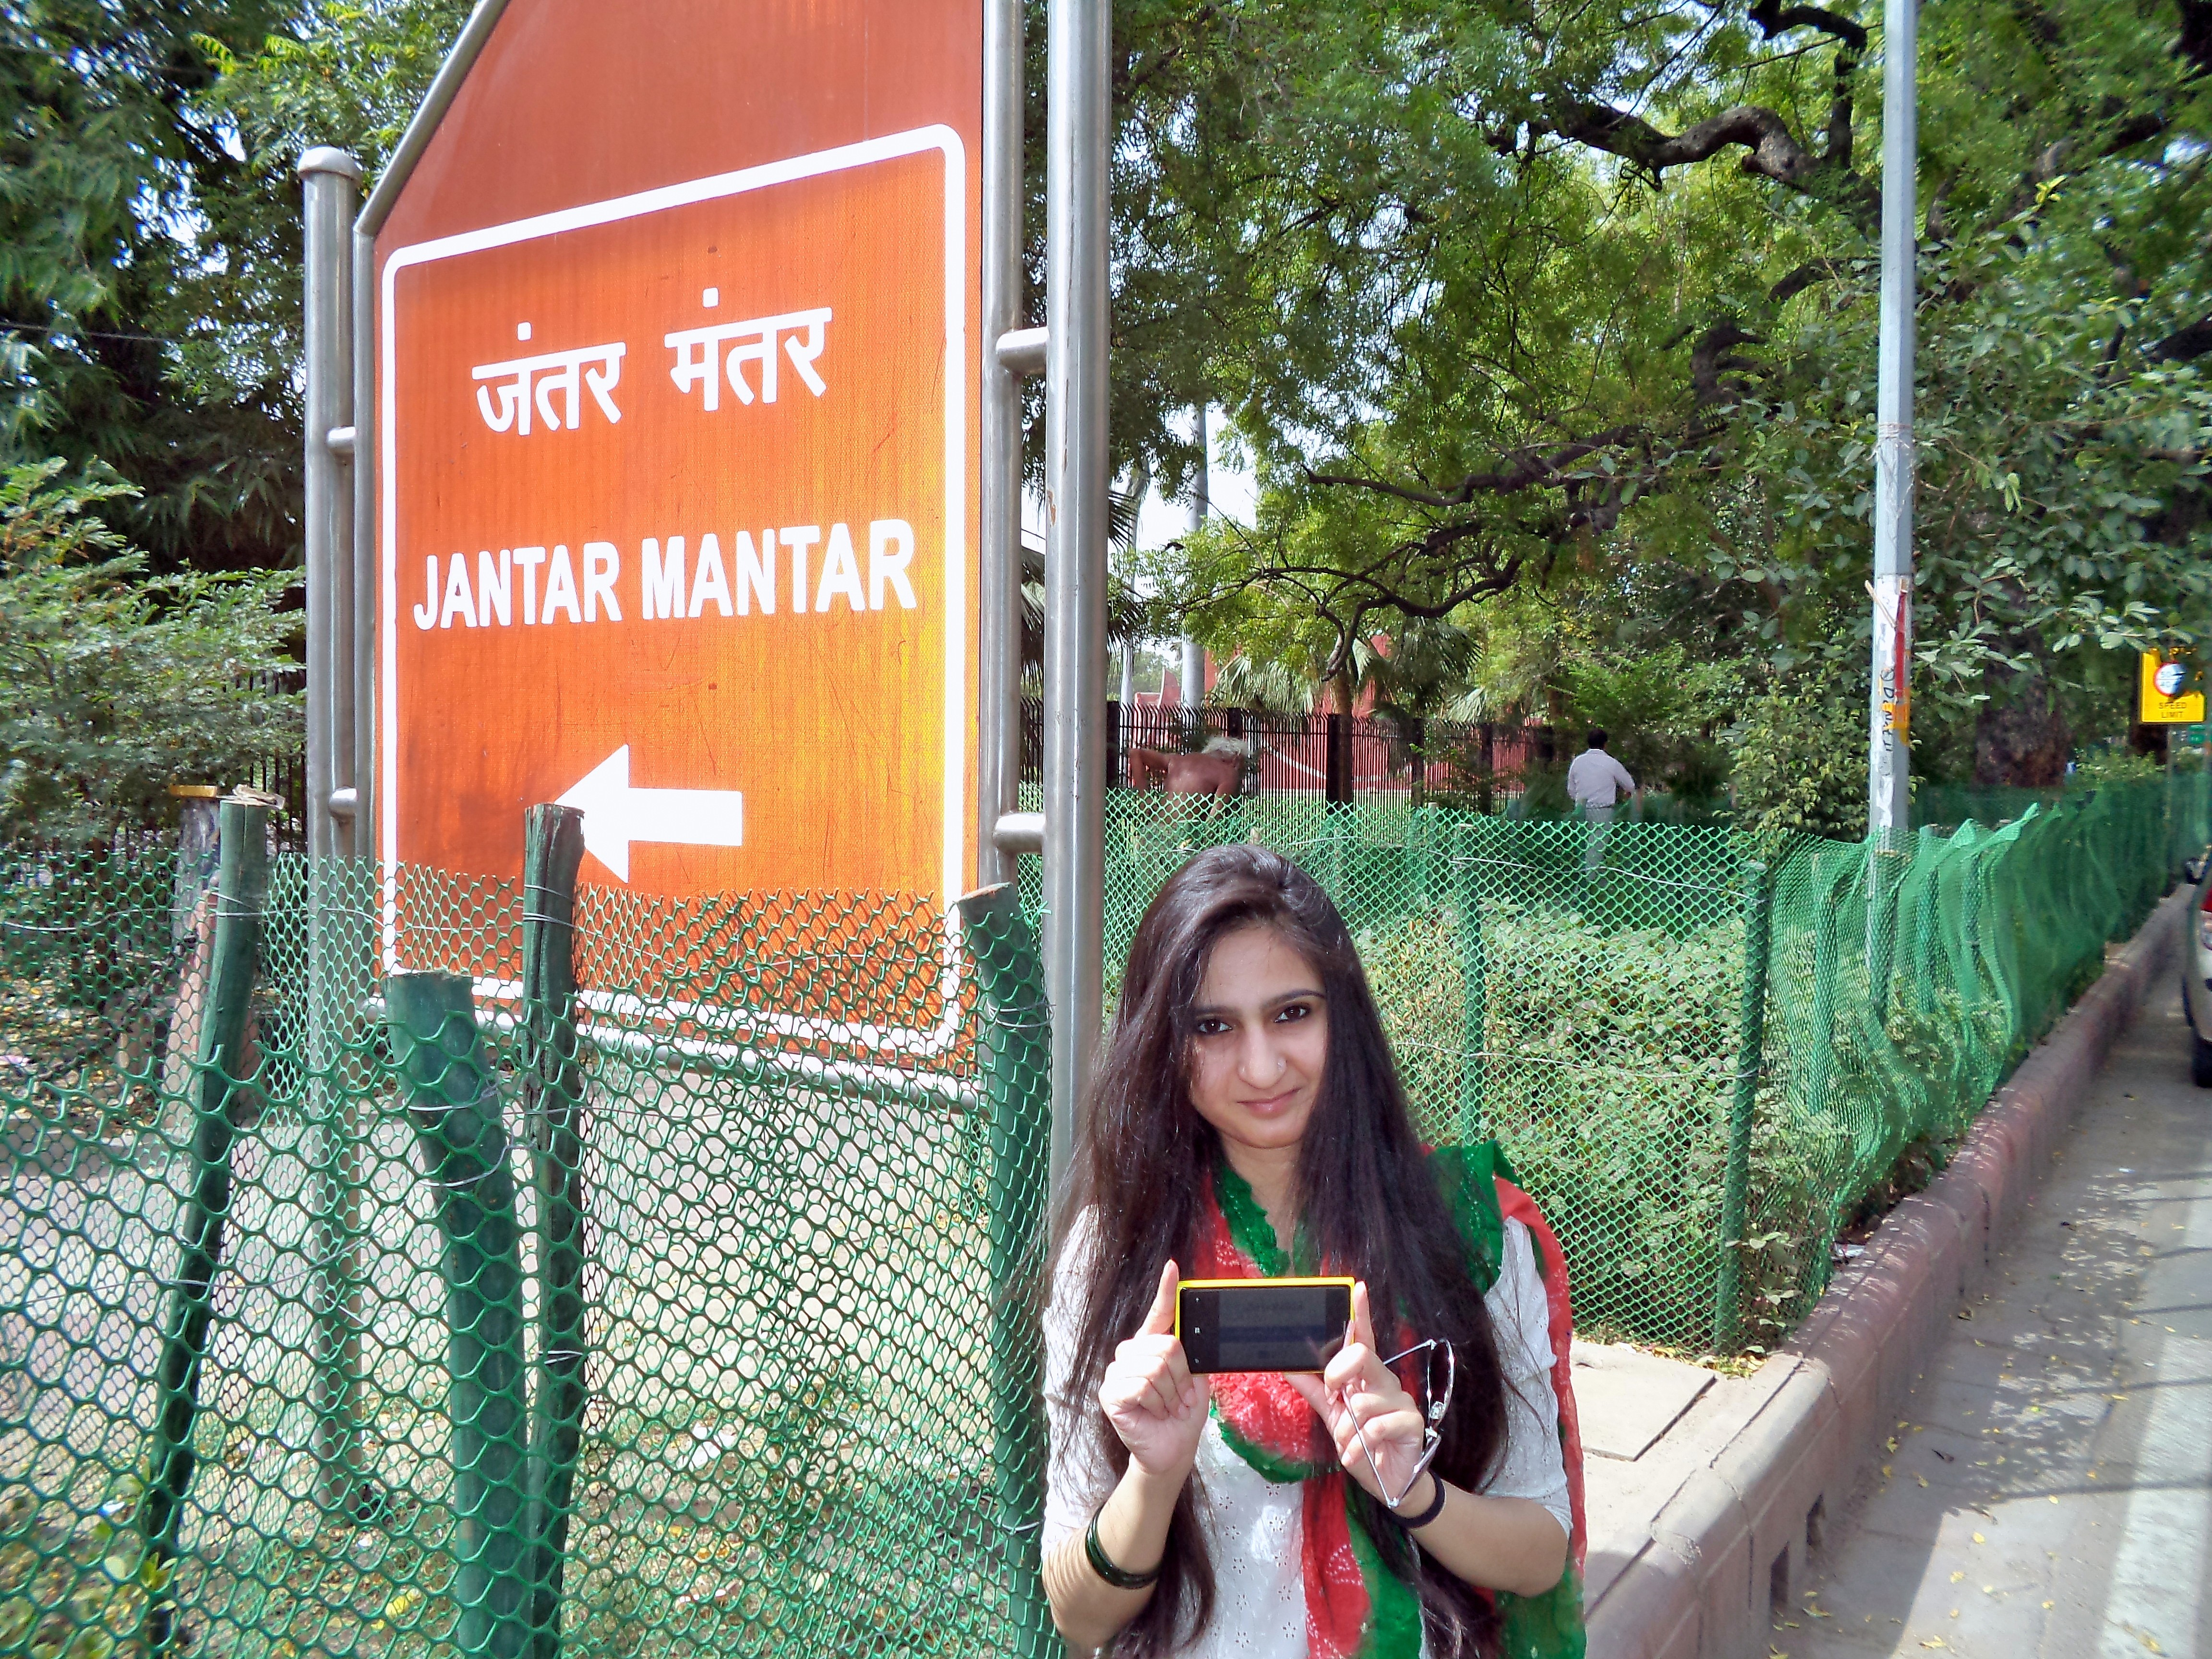 I went to Jantar Mantar, Delhi on 11th June 2014 at 9:00 AM. It is located at Sansad Marg, Connaught Place, i.e the heart of Delhi.  It is one of the five observatories built by the Maharaja of Jaipur - Sawai Jai Singh II. The primary purpose of the observatory was to compile astronomical tables, and to predict the times and movements of the sun, moon and planets. There are 13 astronomical instruments, out of which 1 is samrat yantra, the sun dial. Samrat Yantra calculates time of the accurately. Jantar Mantar can be reached easily by delhi metro, nearest metro station is patel chowk.